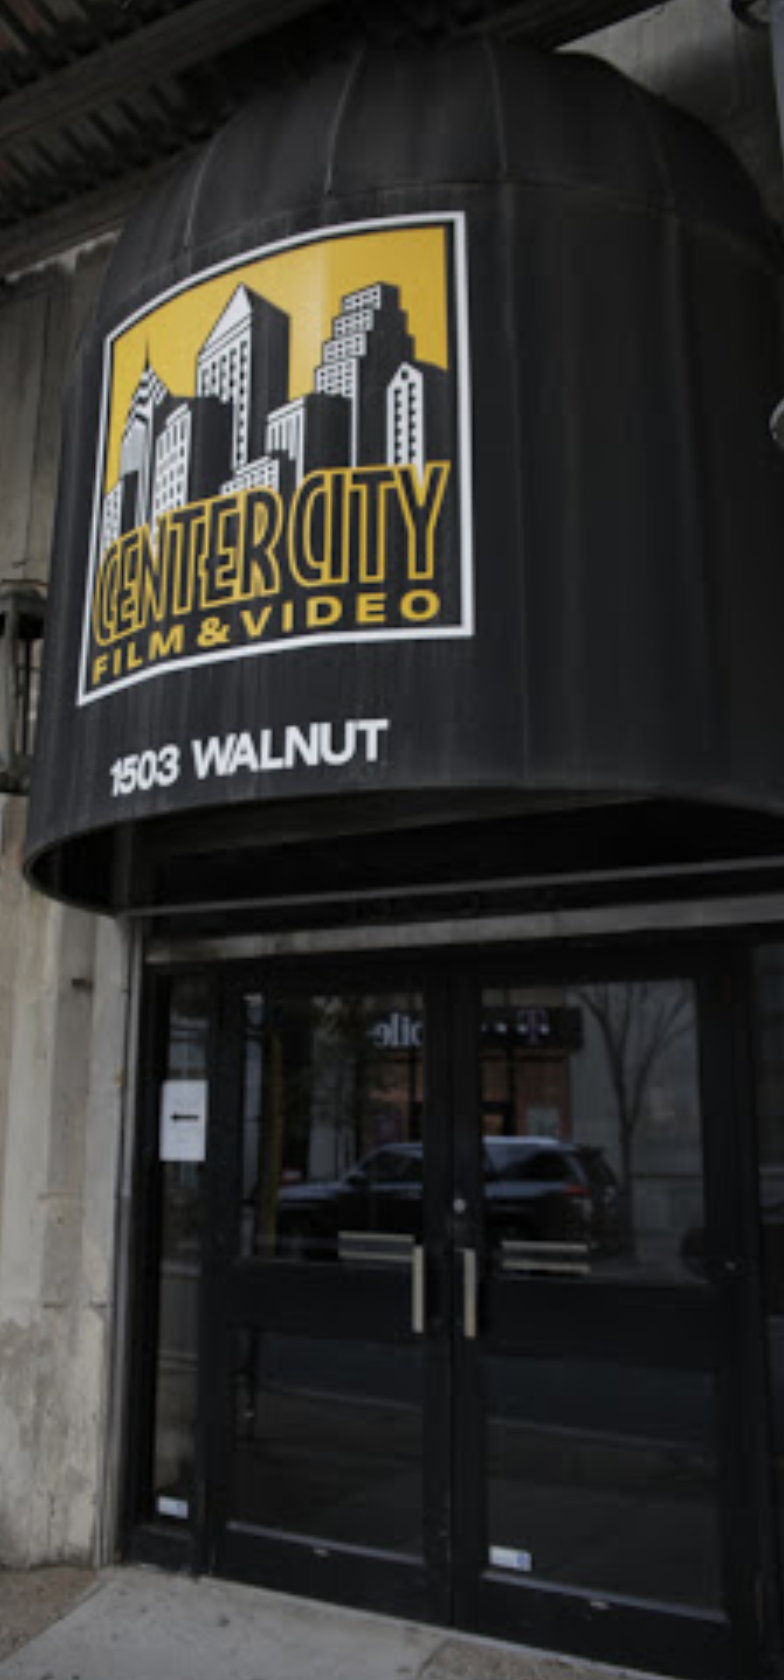 Center City Film & Video